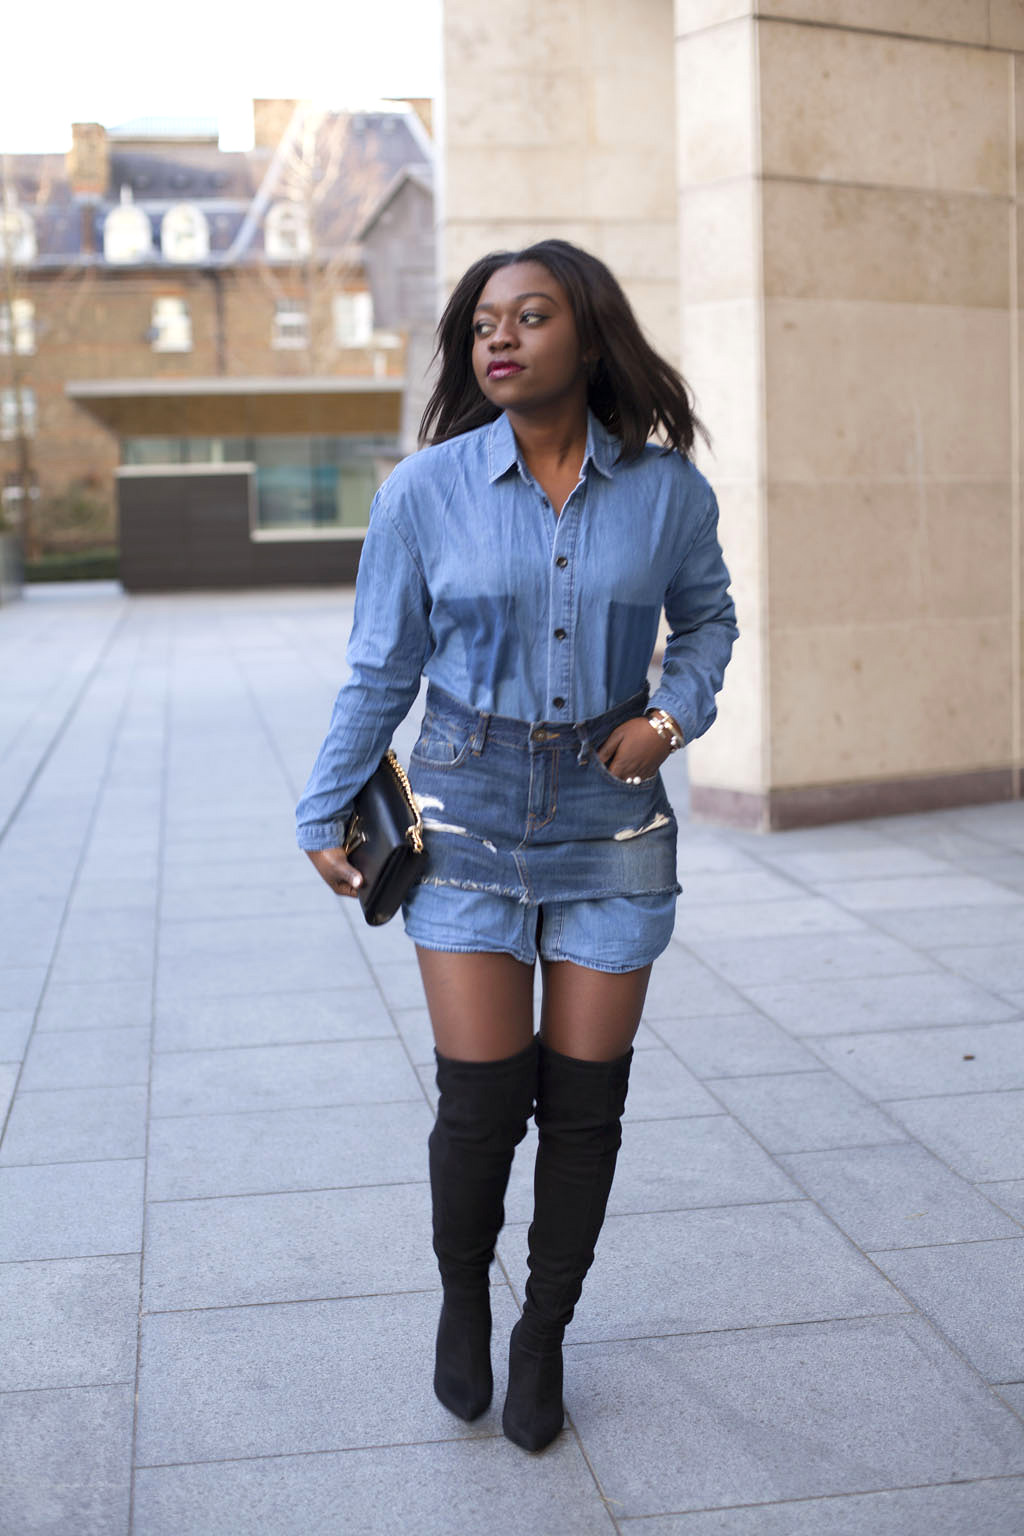 denim-shirt-levis-denim-skirt-double-denim-black-over-the-knee ...